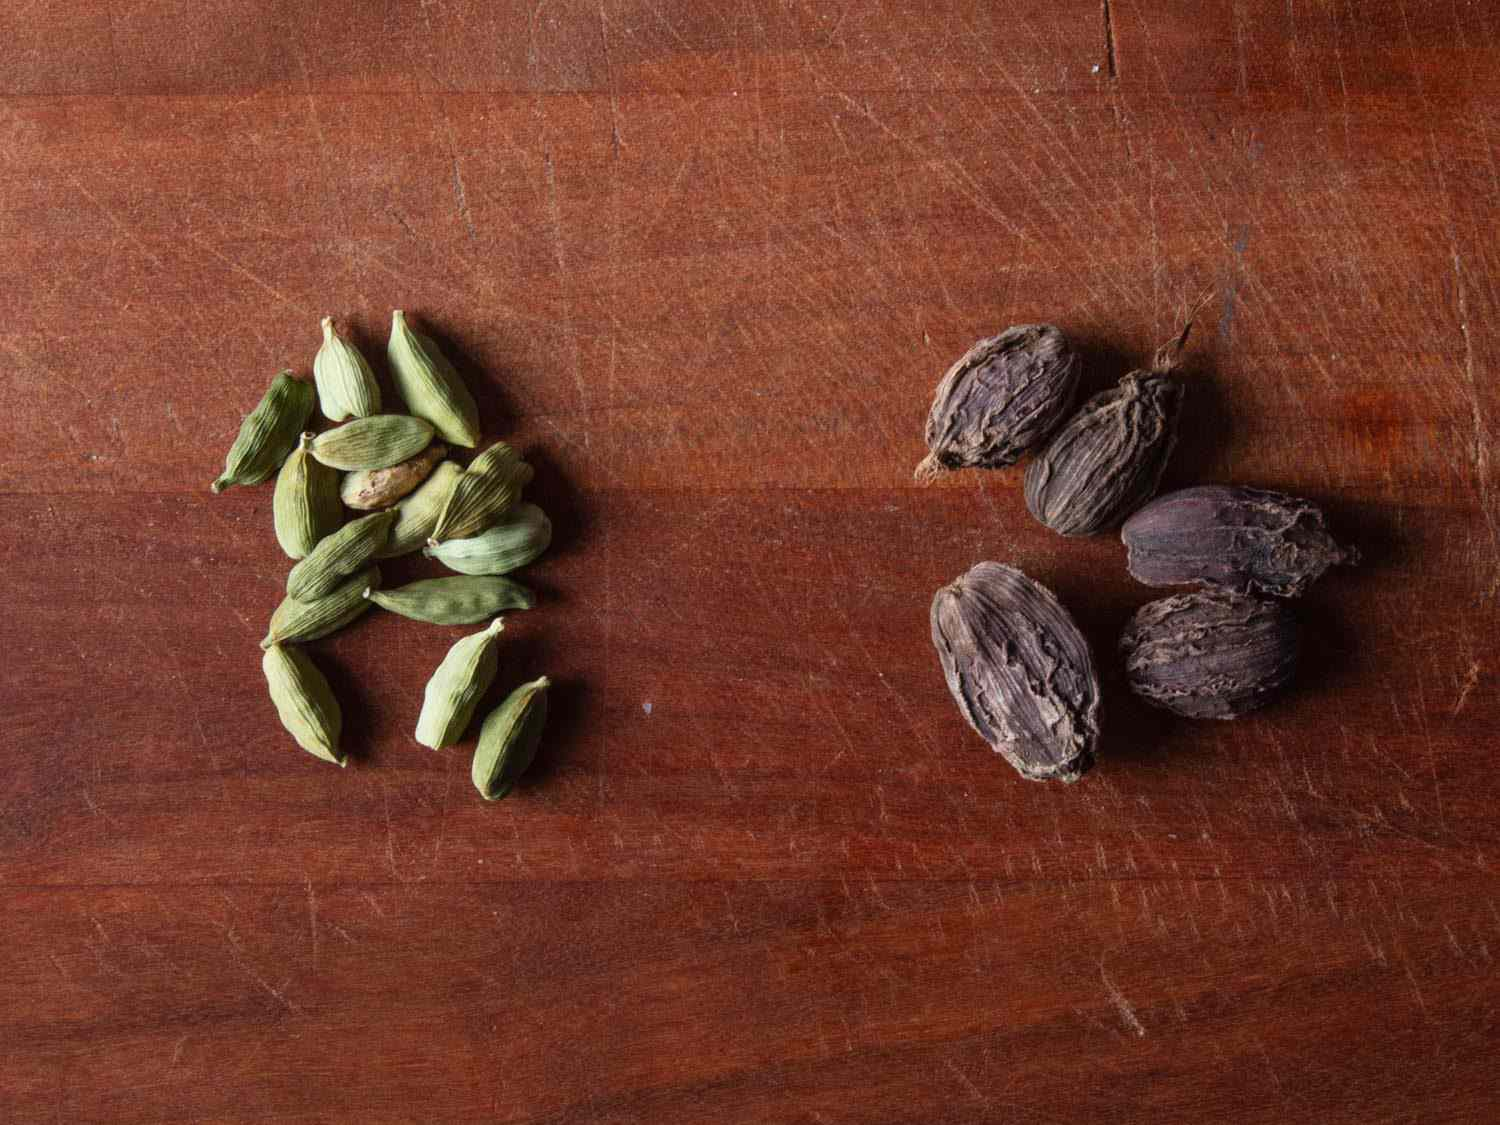 Side by side comparison of green cardamom pods (left) and brown cardamom pods (right)